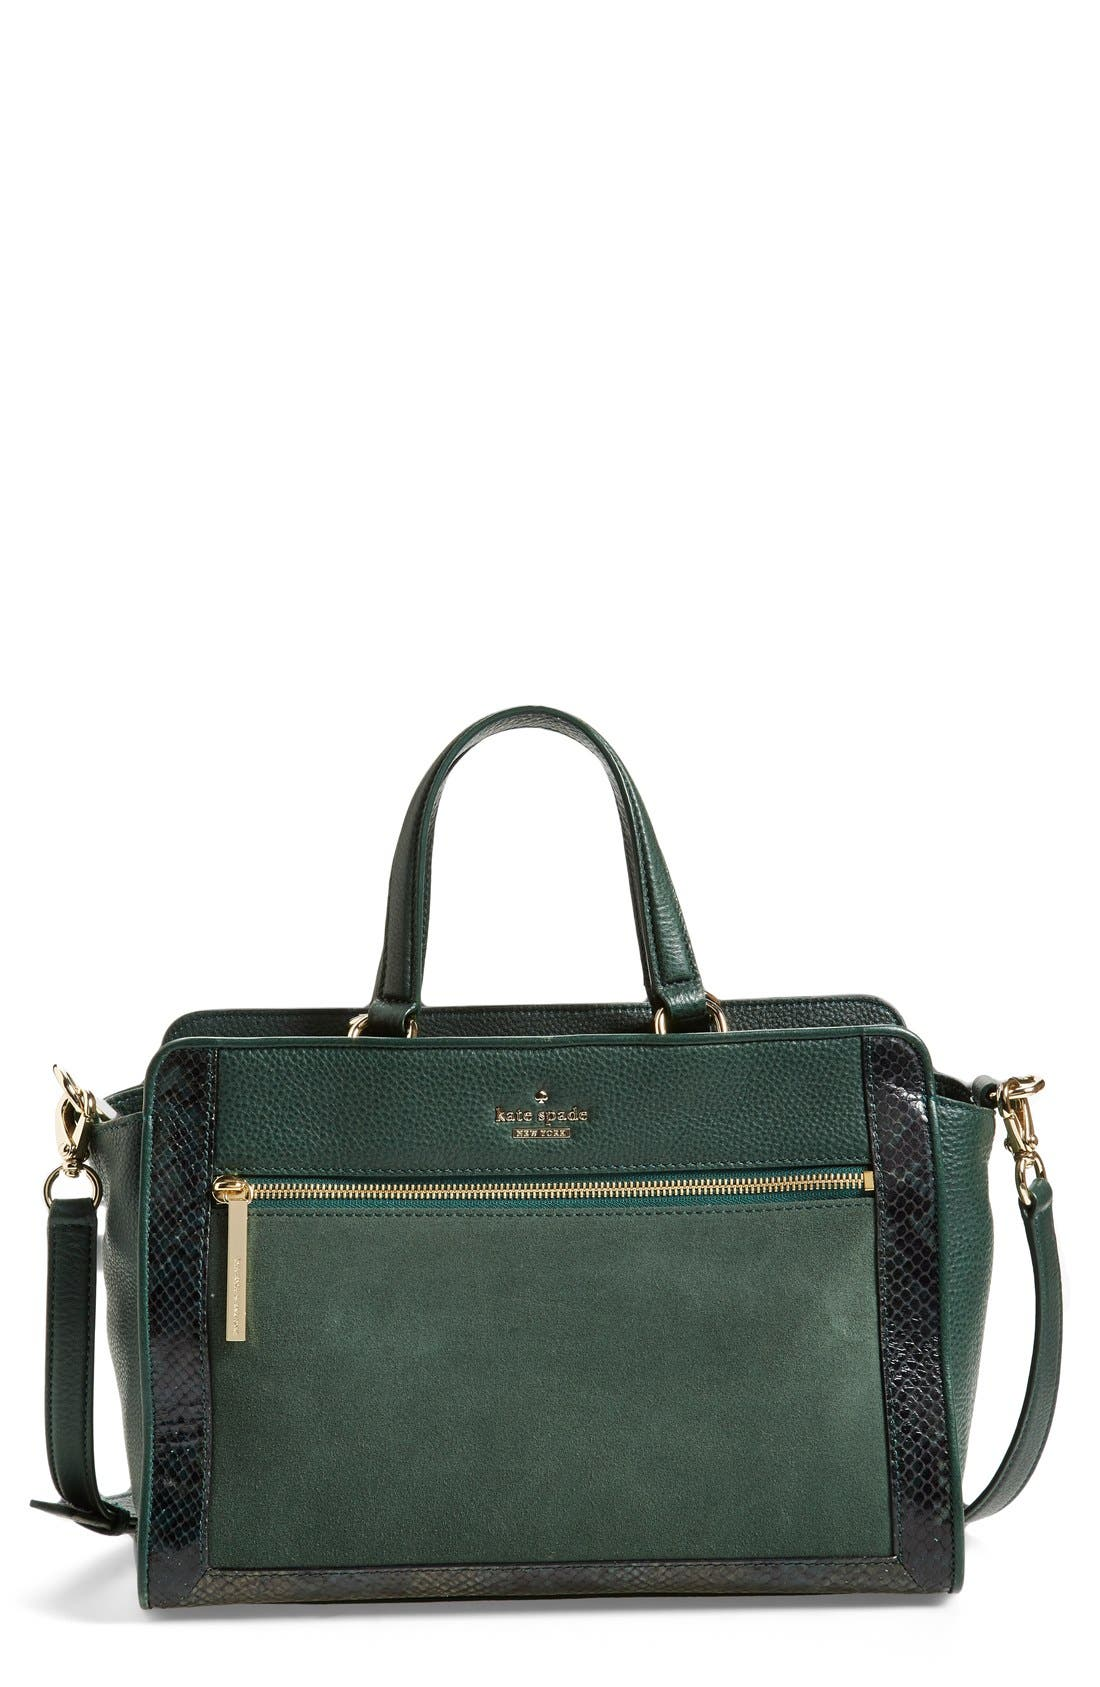 Main Image - kate spade new york 'chatham lane - harlan' satchel